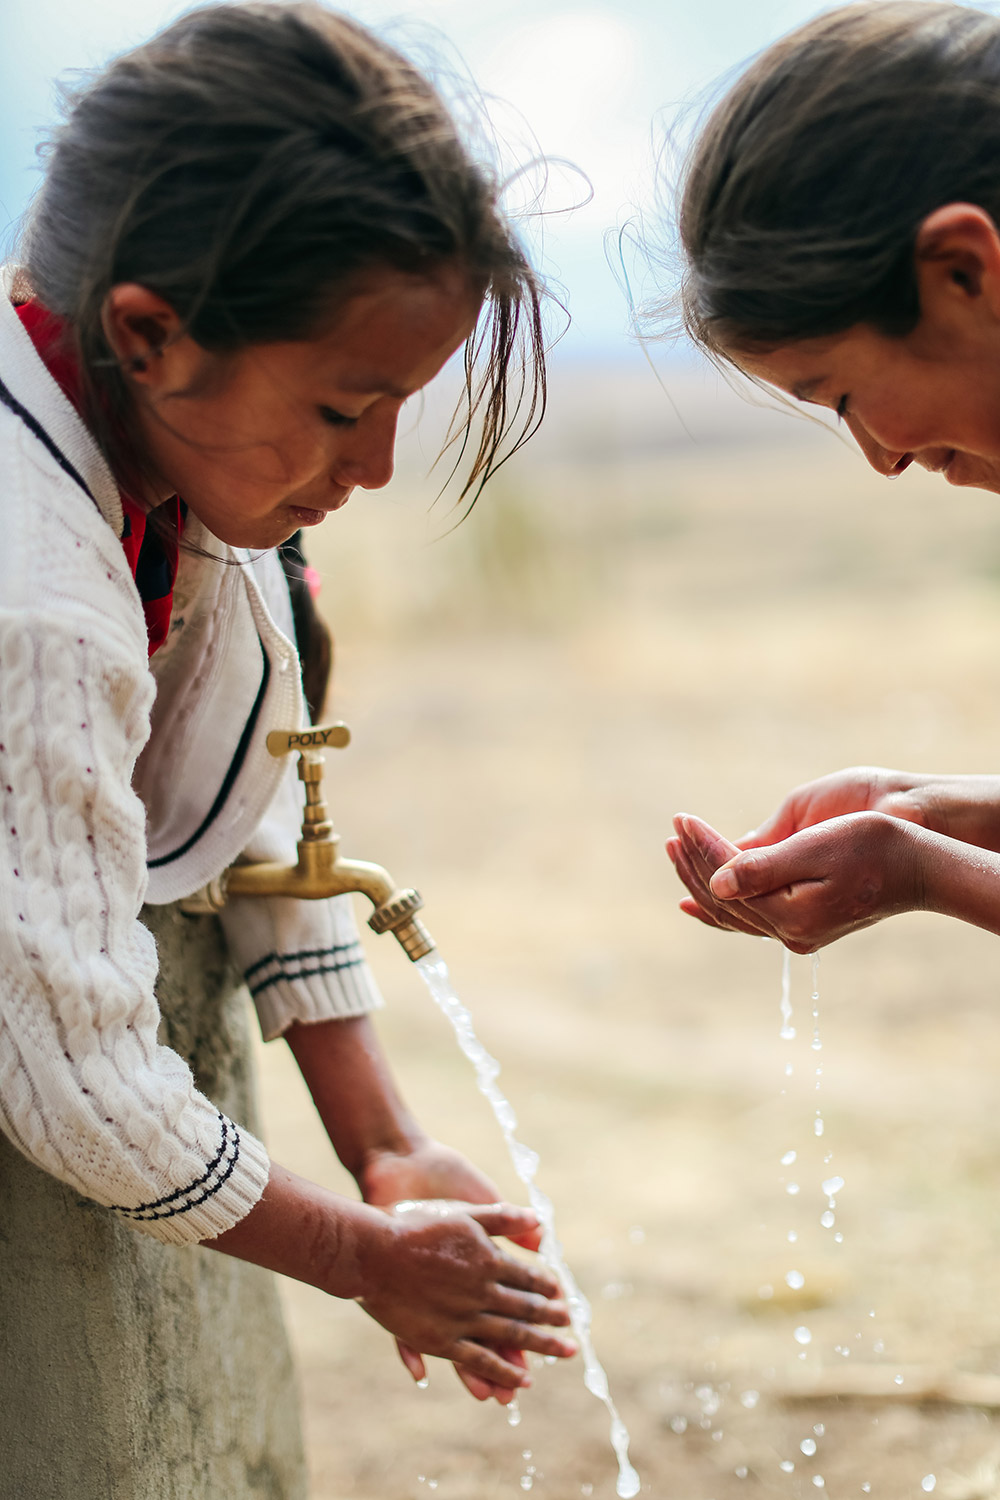 two girls washing their hands outside at a faucet | Clean Water in Bolivia | Where We Work | Water For People